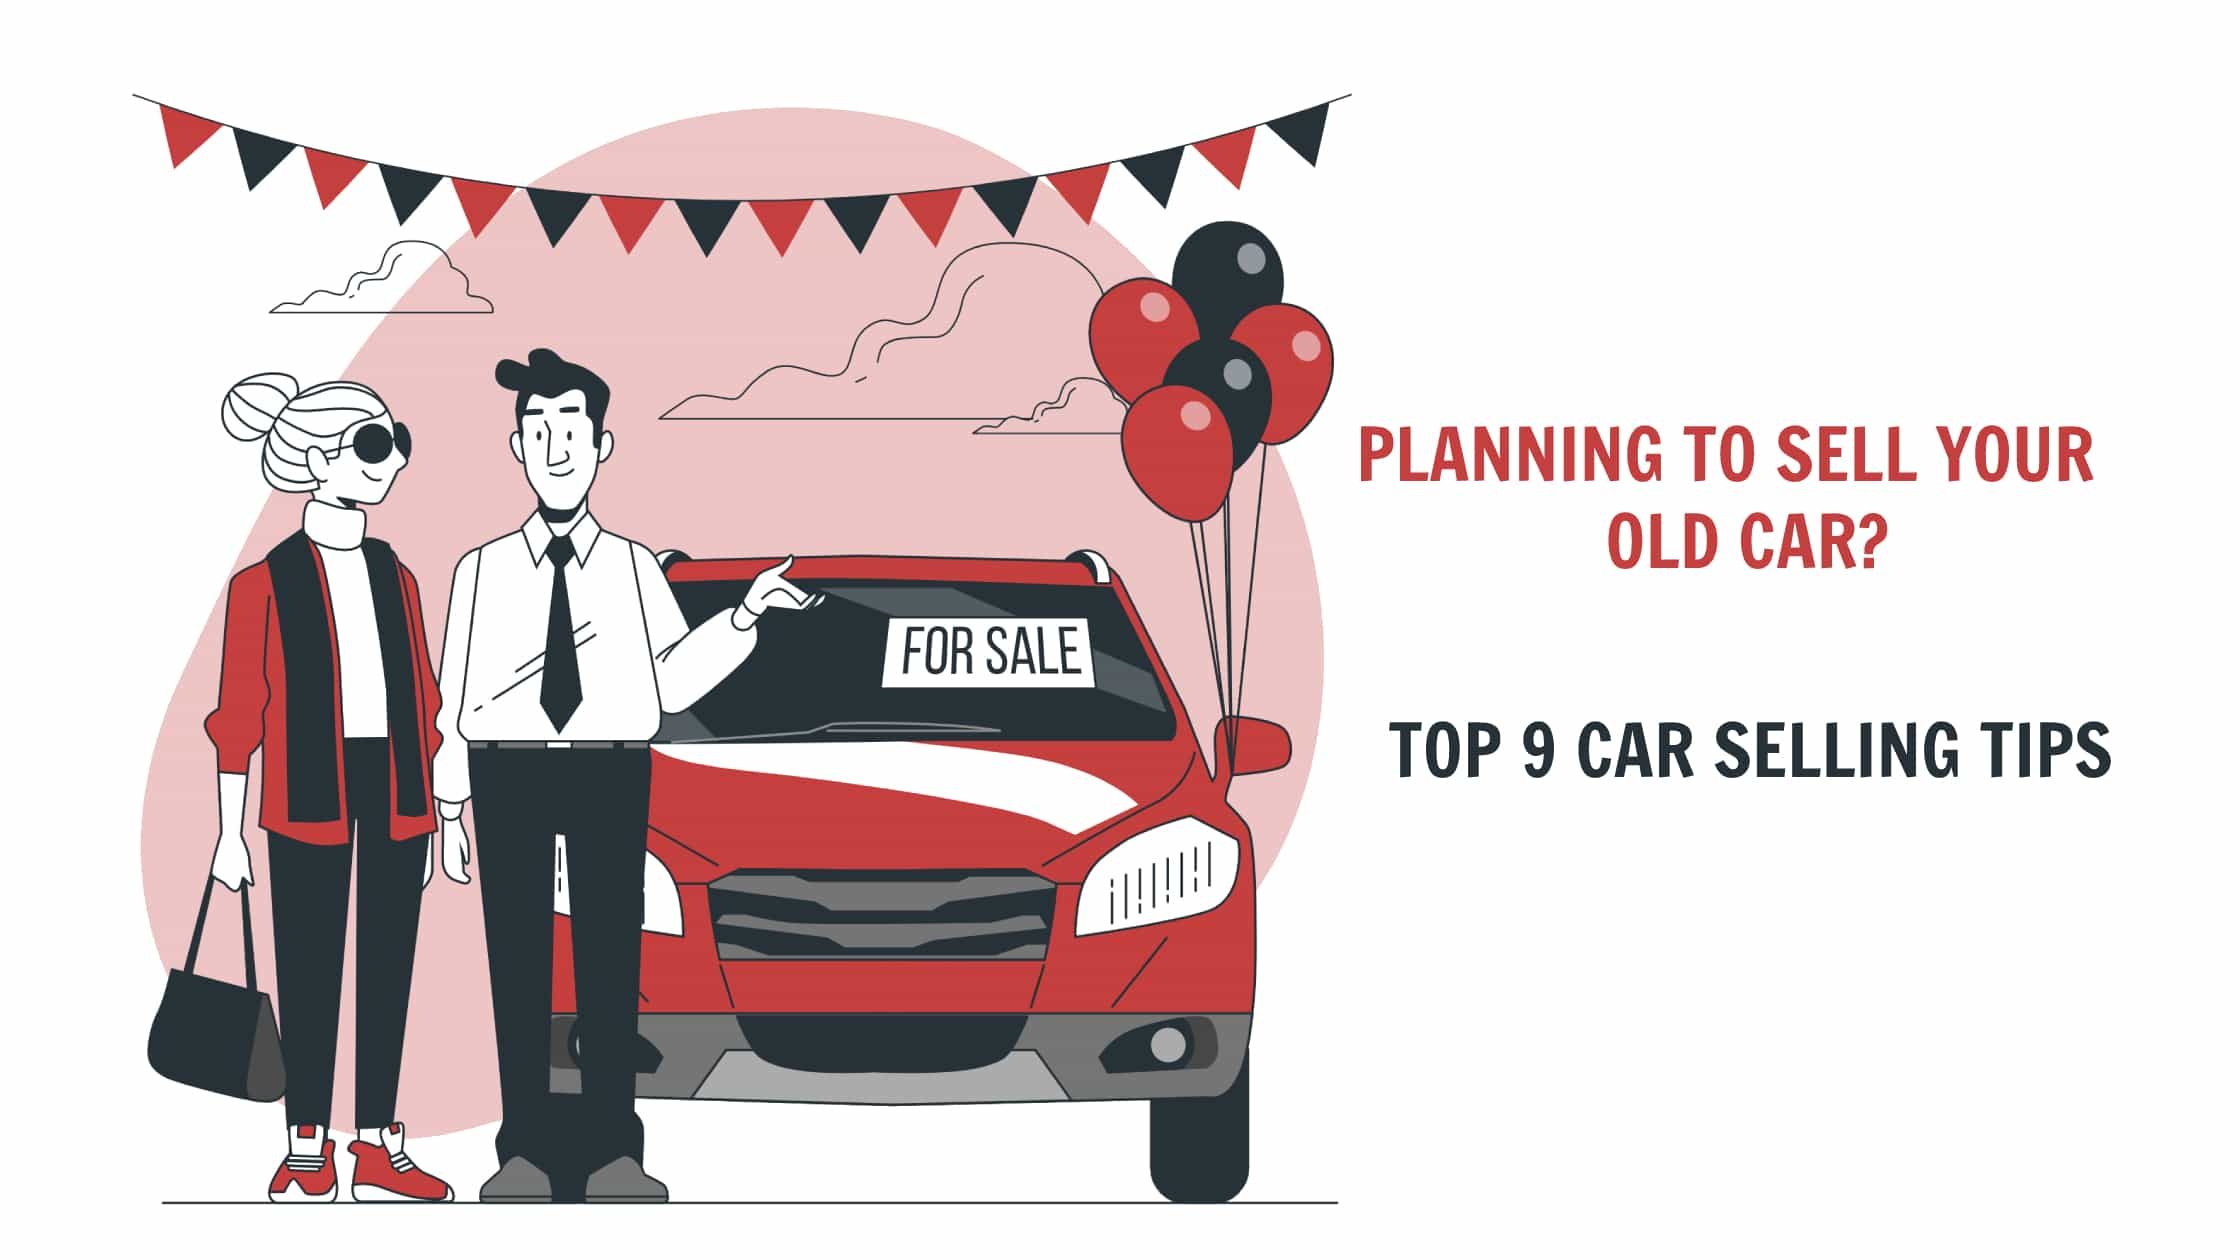 Are you Planning to sell your old car? Here are the Top 9 Car Selling Tips